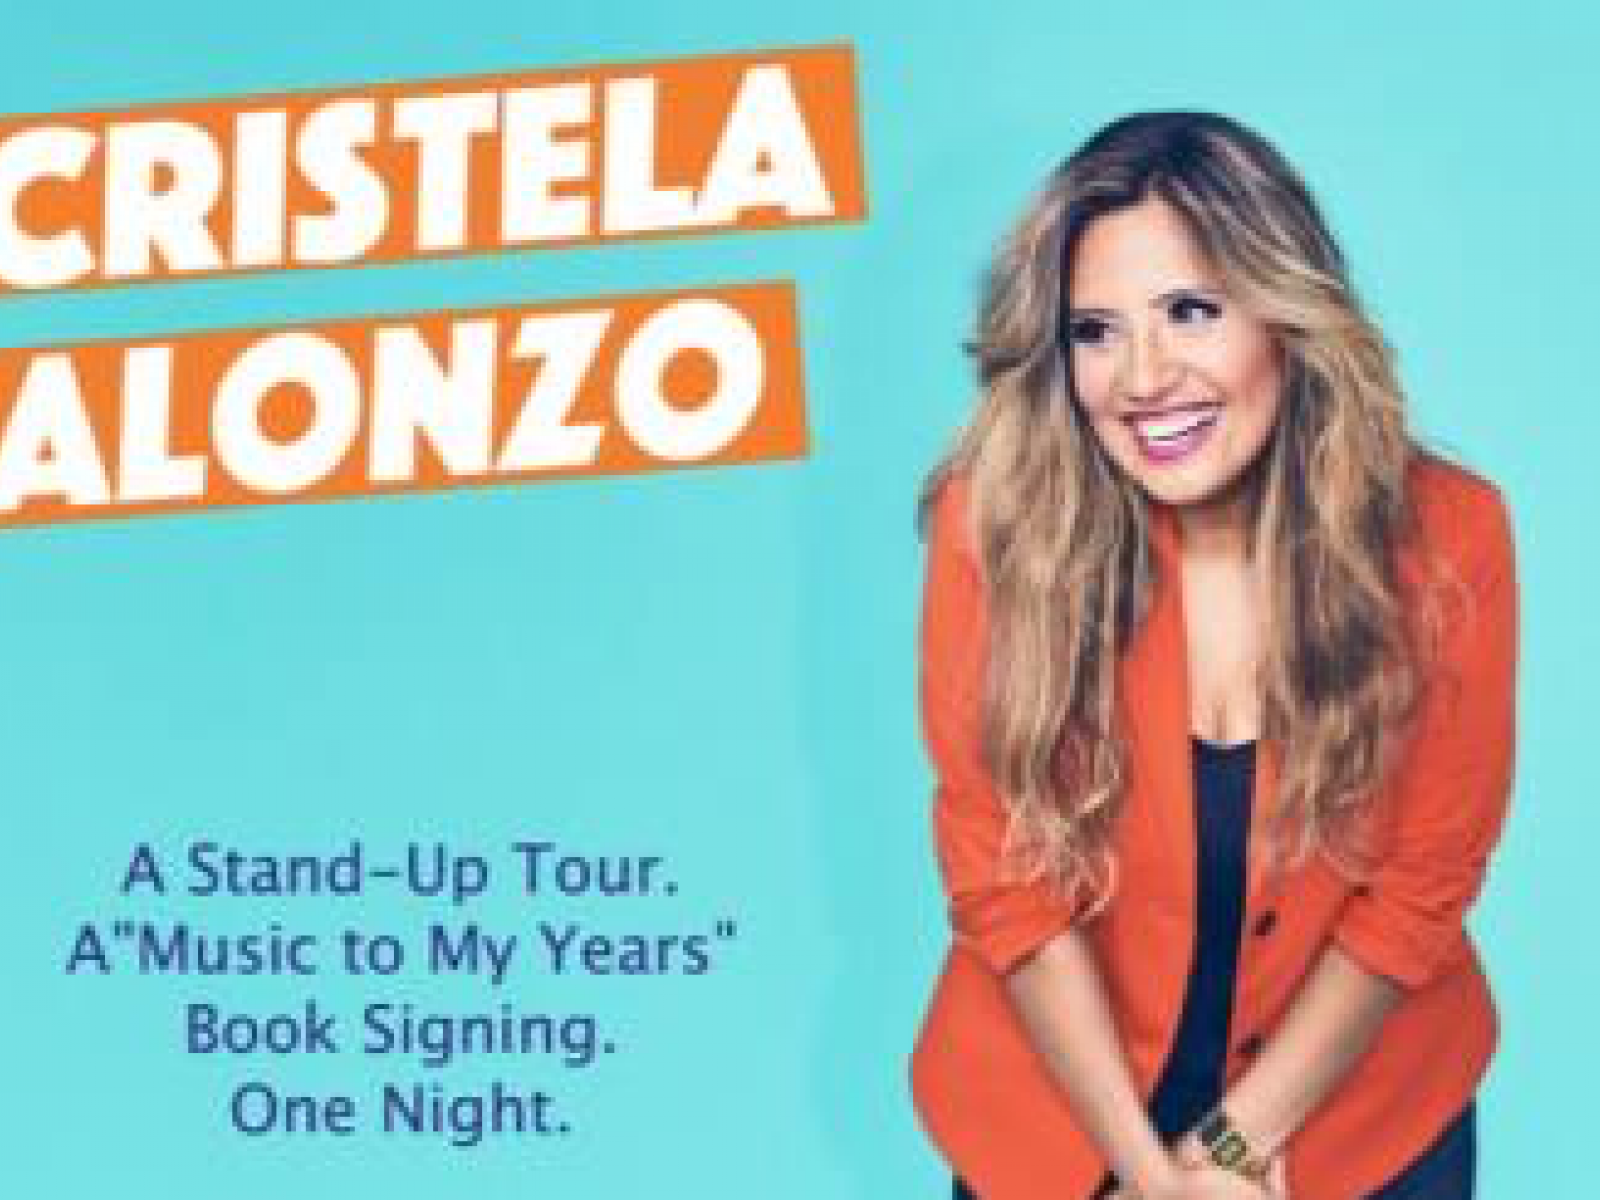 Main image for event titled CRISTELA ALONZO: MY AFFORDABLE CARE ACT